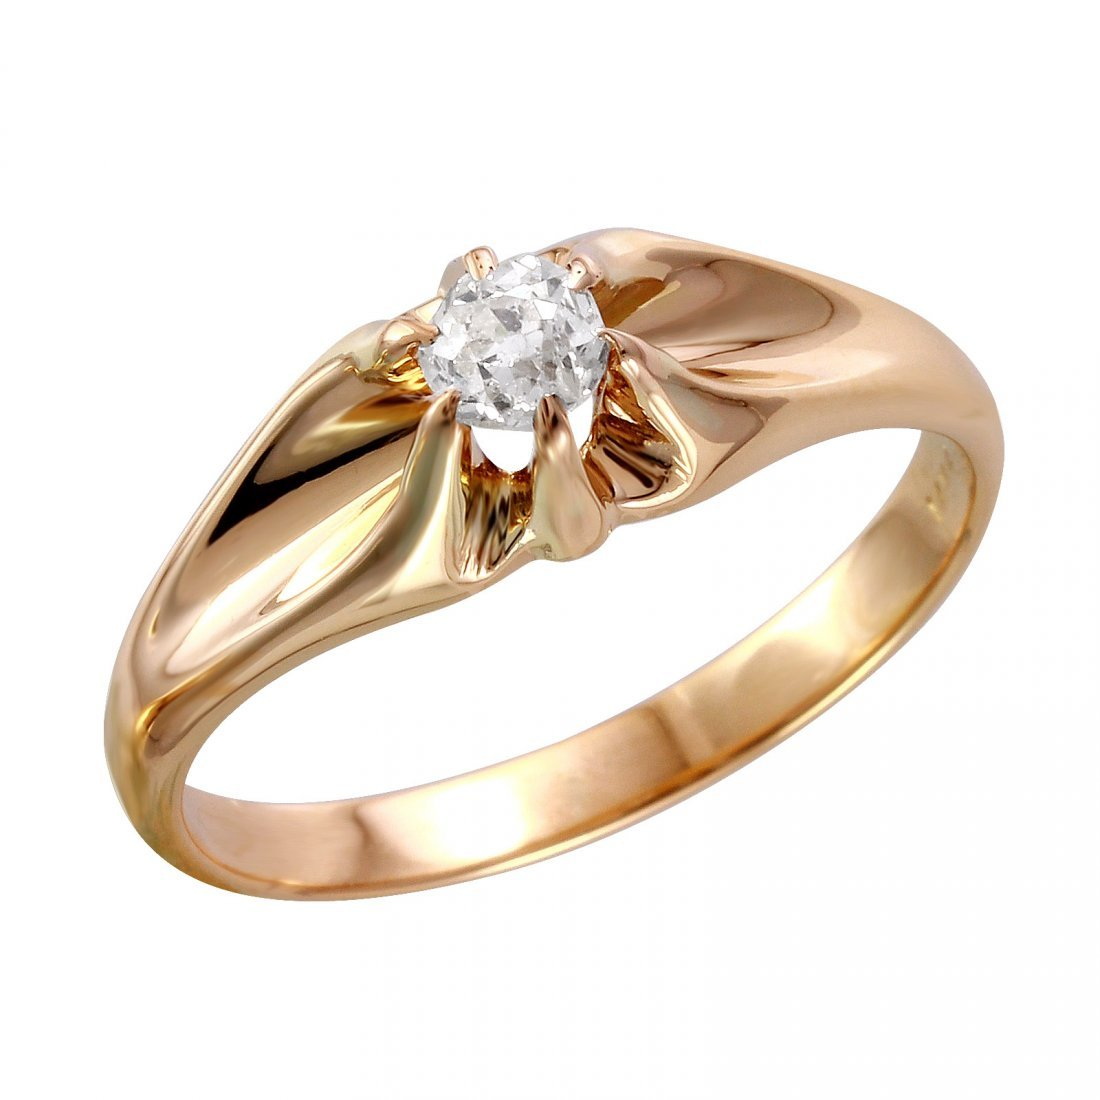 14KT Yellow Gold Old European Cut Diamond Solitaire